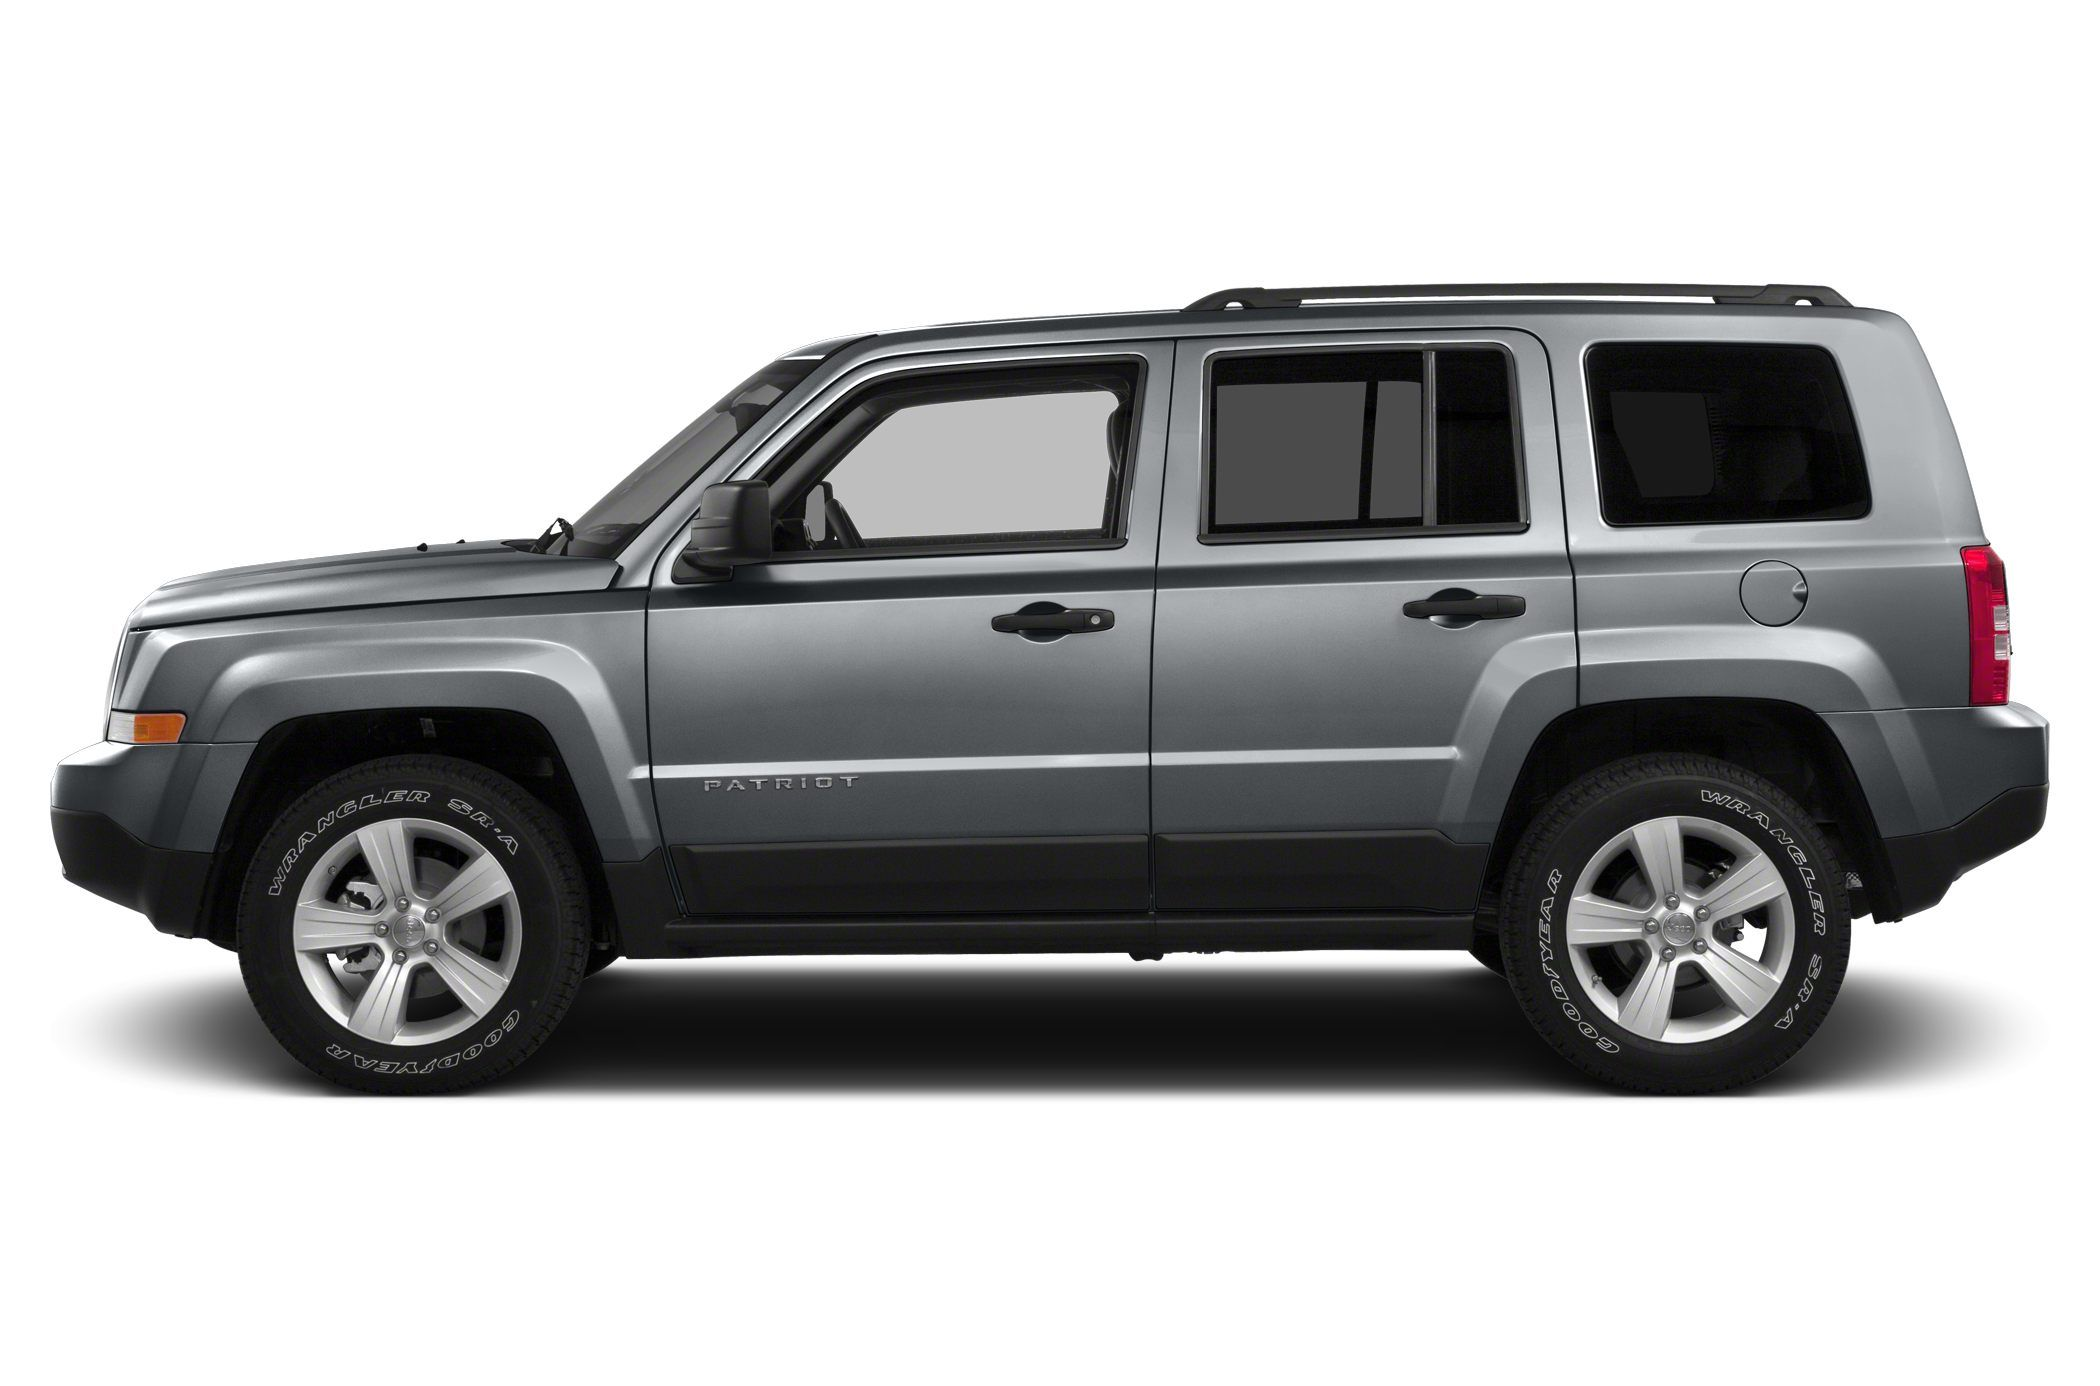 jeep patriot - black on black <3 | product: i love these ones